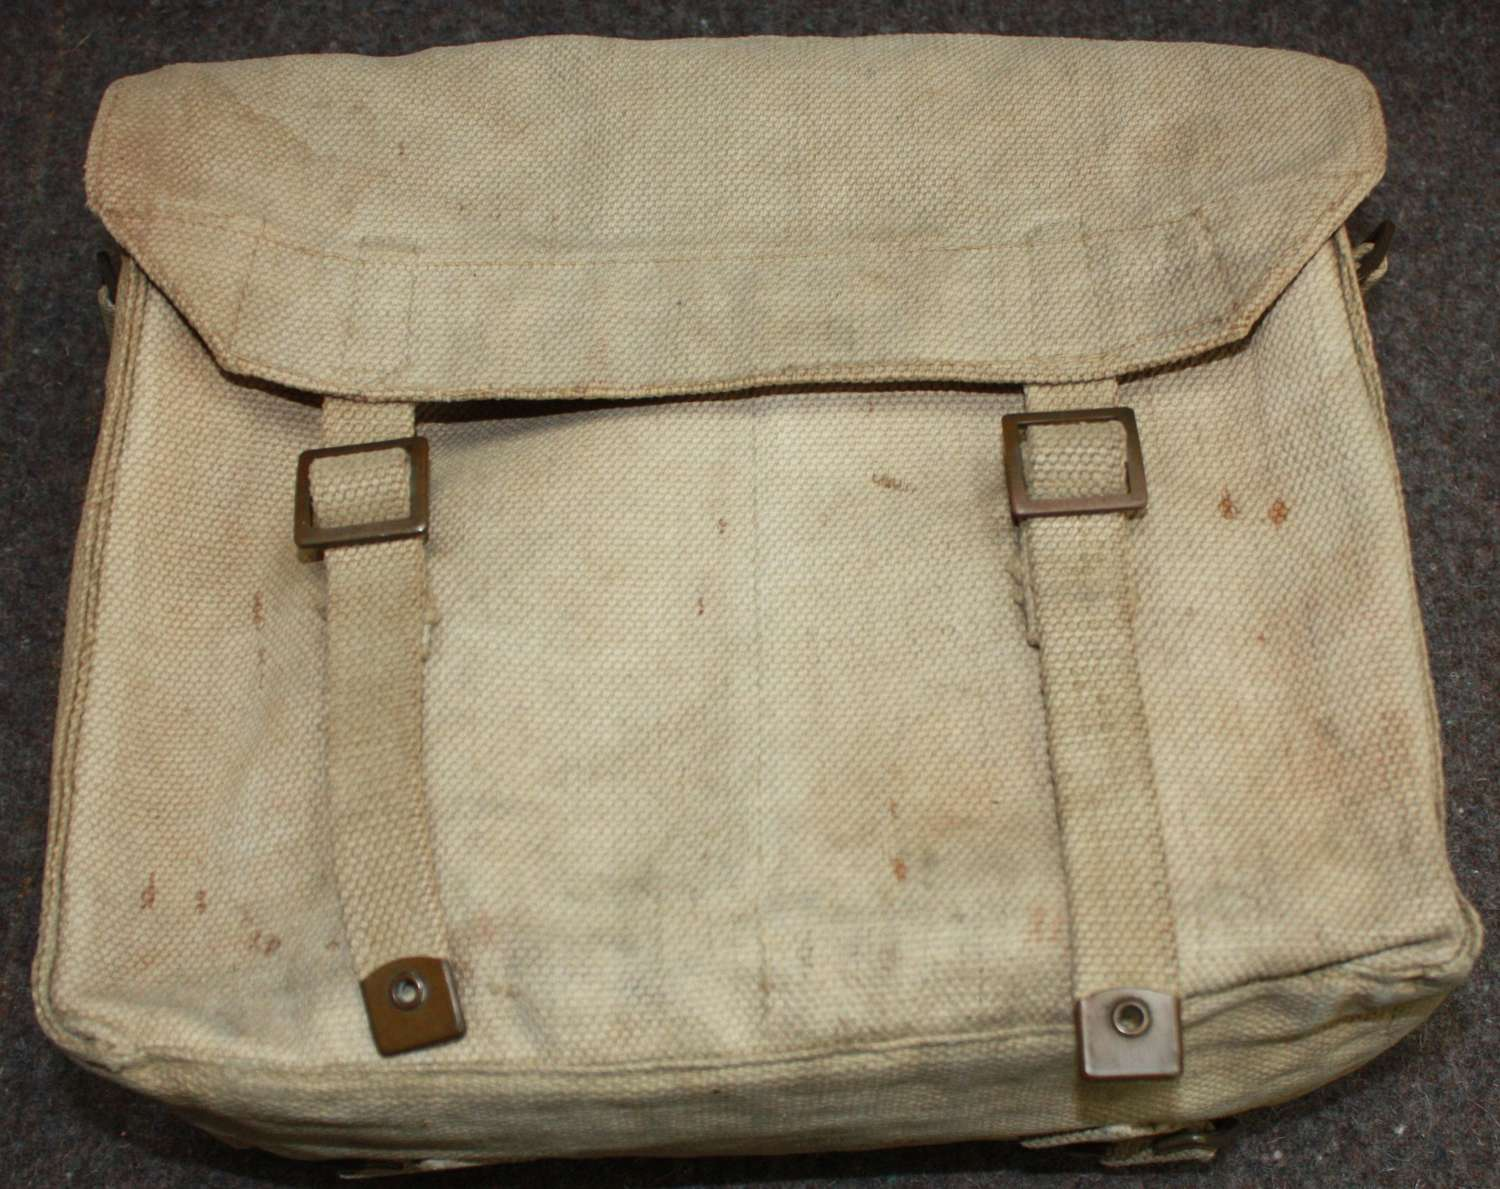 A GOOD USED 37 PATTERN WEBBING SMALL PACK  1942 DATED